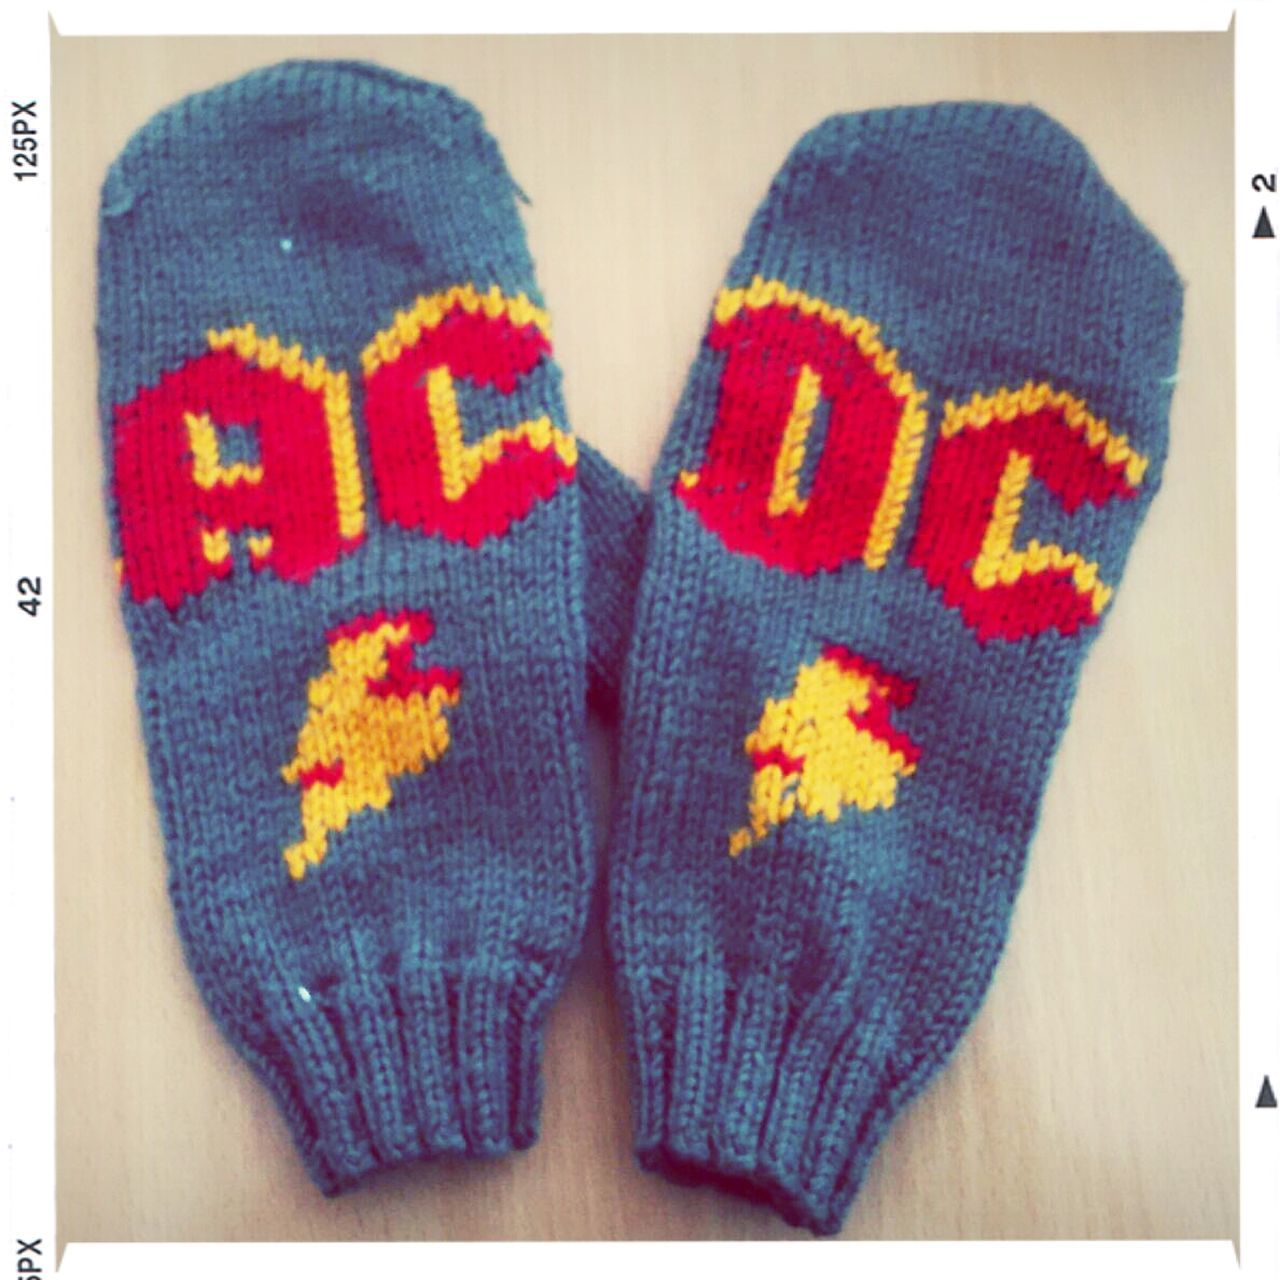 Music Hand Made AC/DC варежки ;)